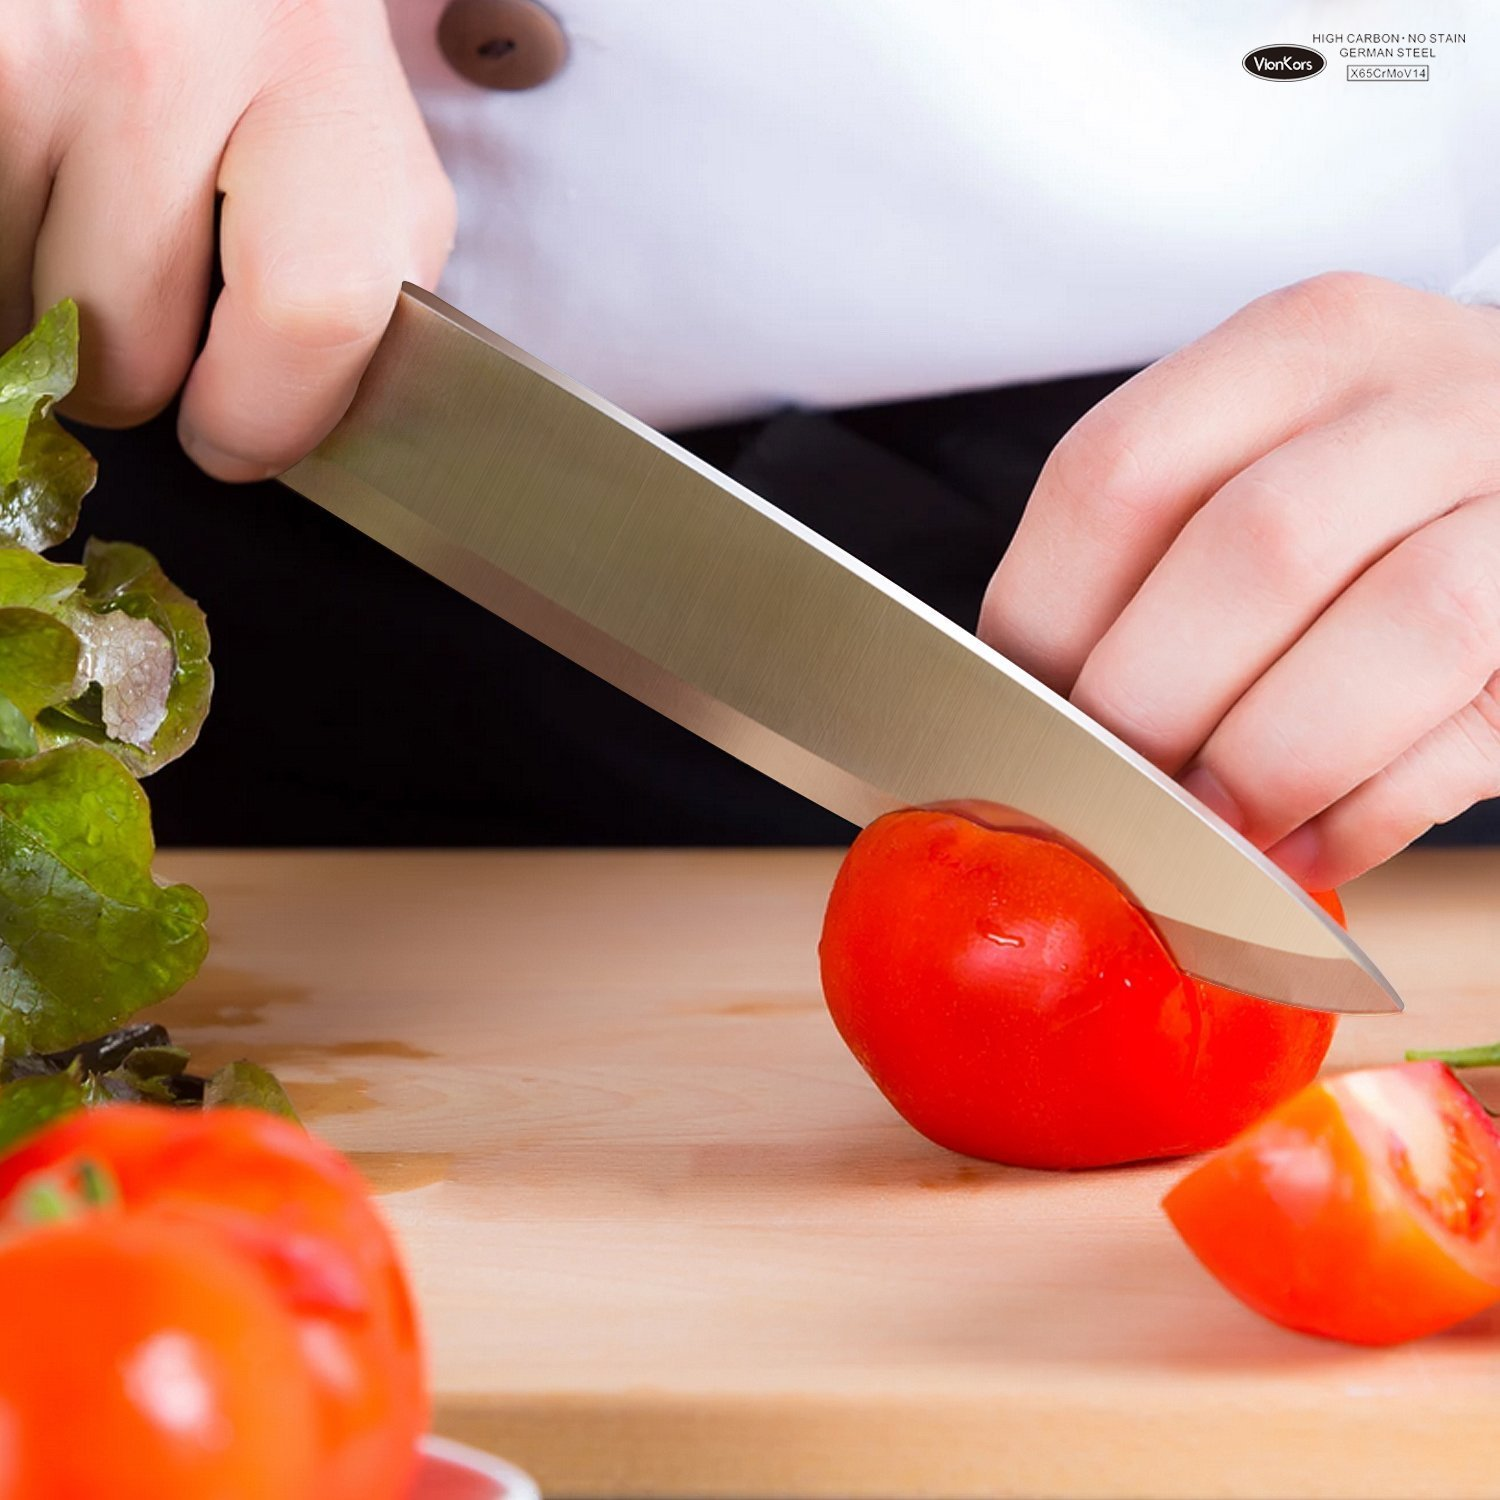 Kitchen Knife 8 inches Chef Knife - VIANKORS pro German stainless steel sharp knives, Highly Recommended,Razor Sharp, Ergonomic handle, For home & restaurant by Viankors (Image #5)